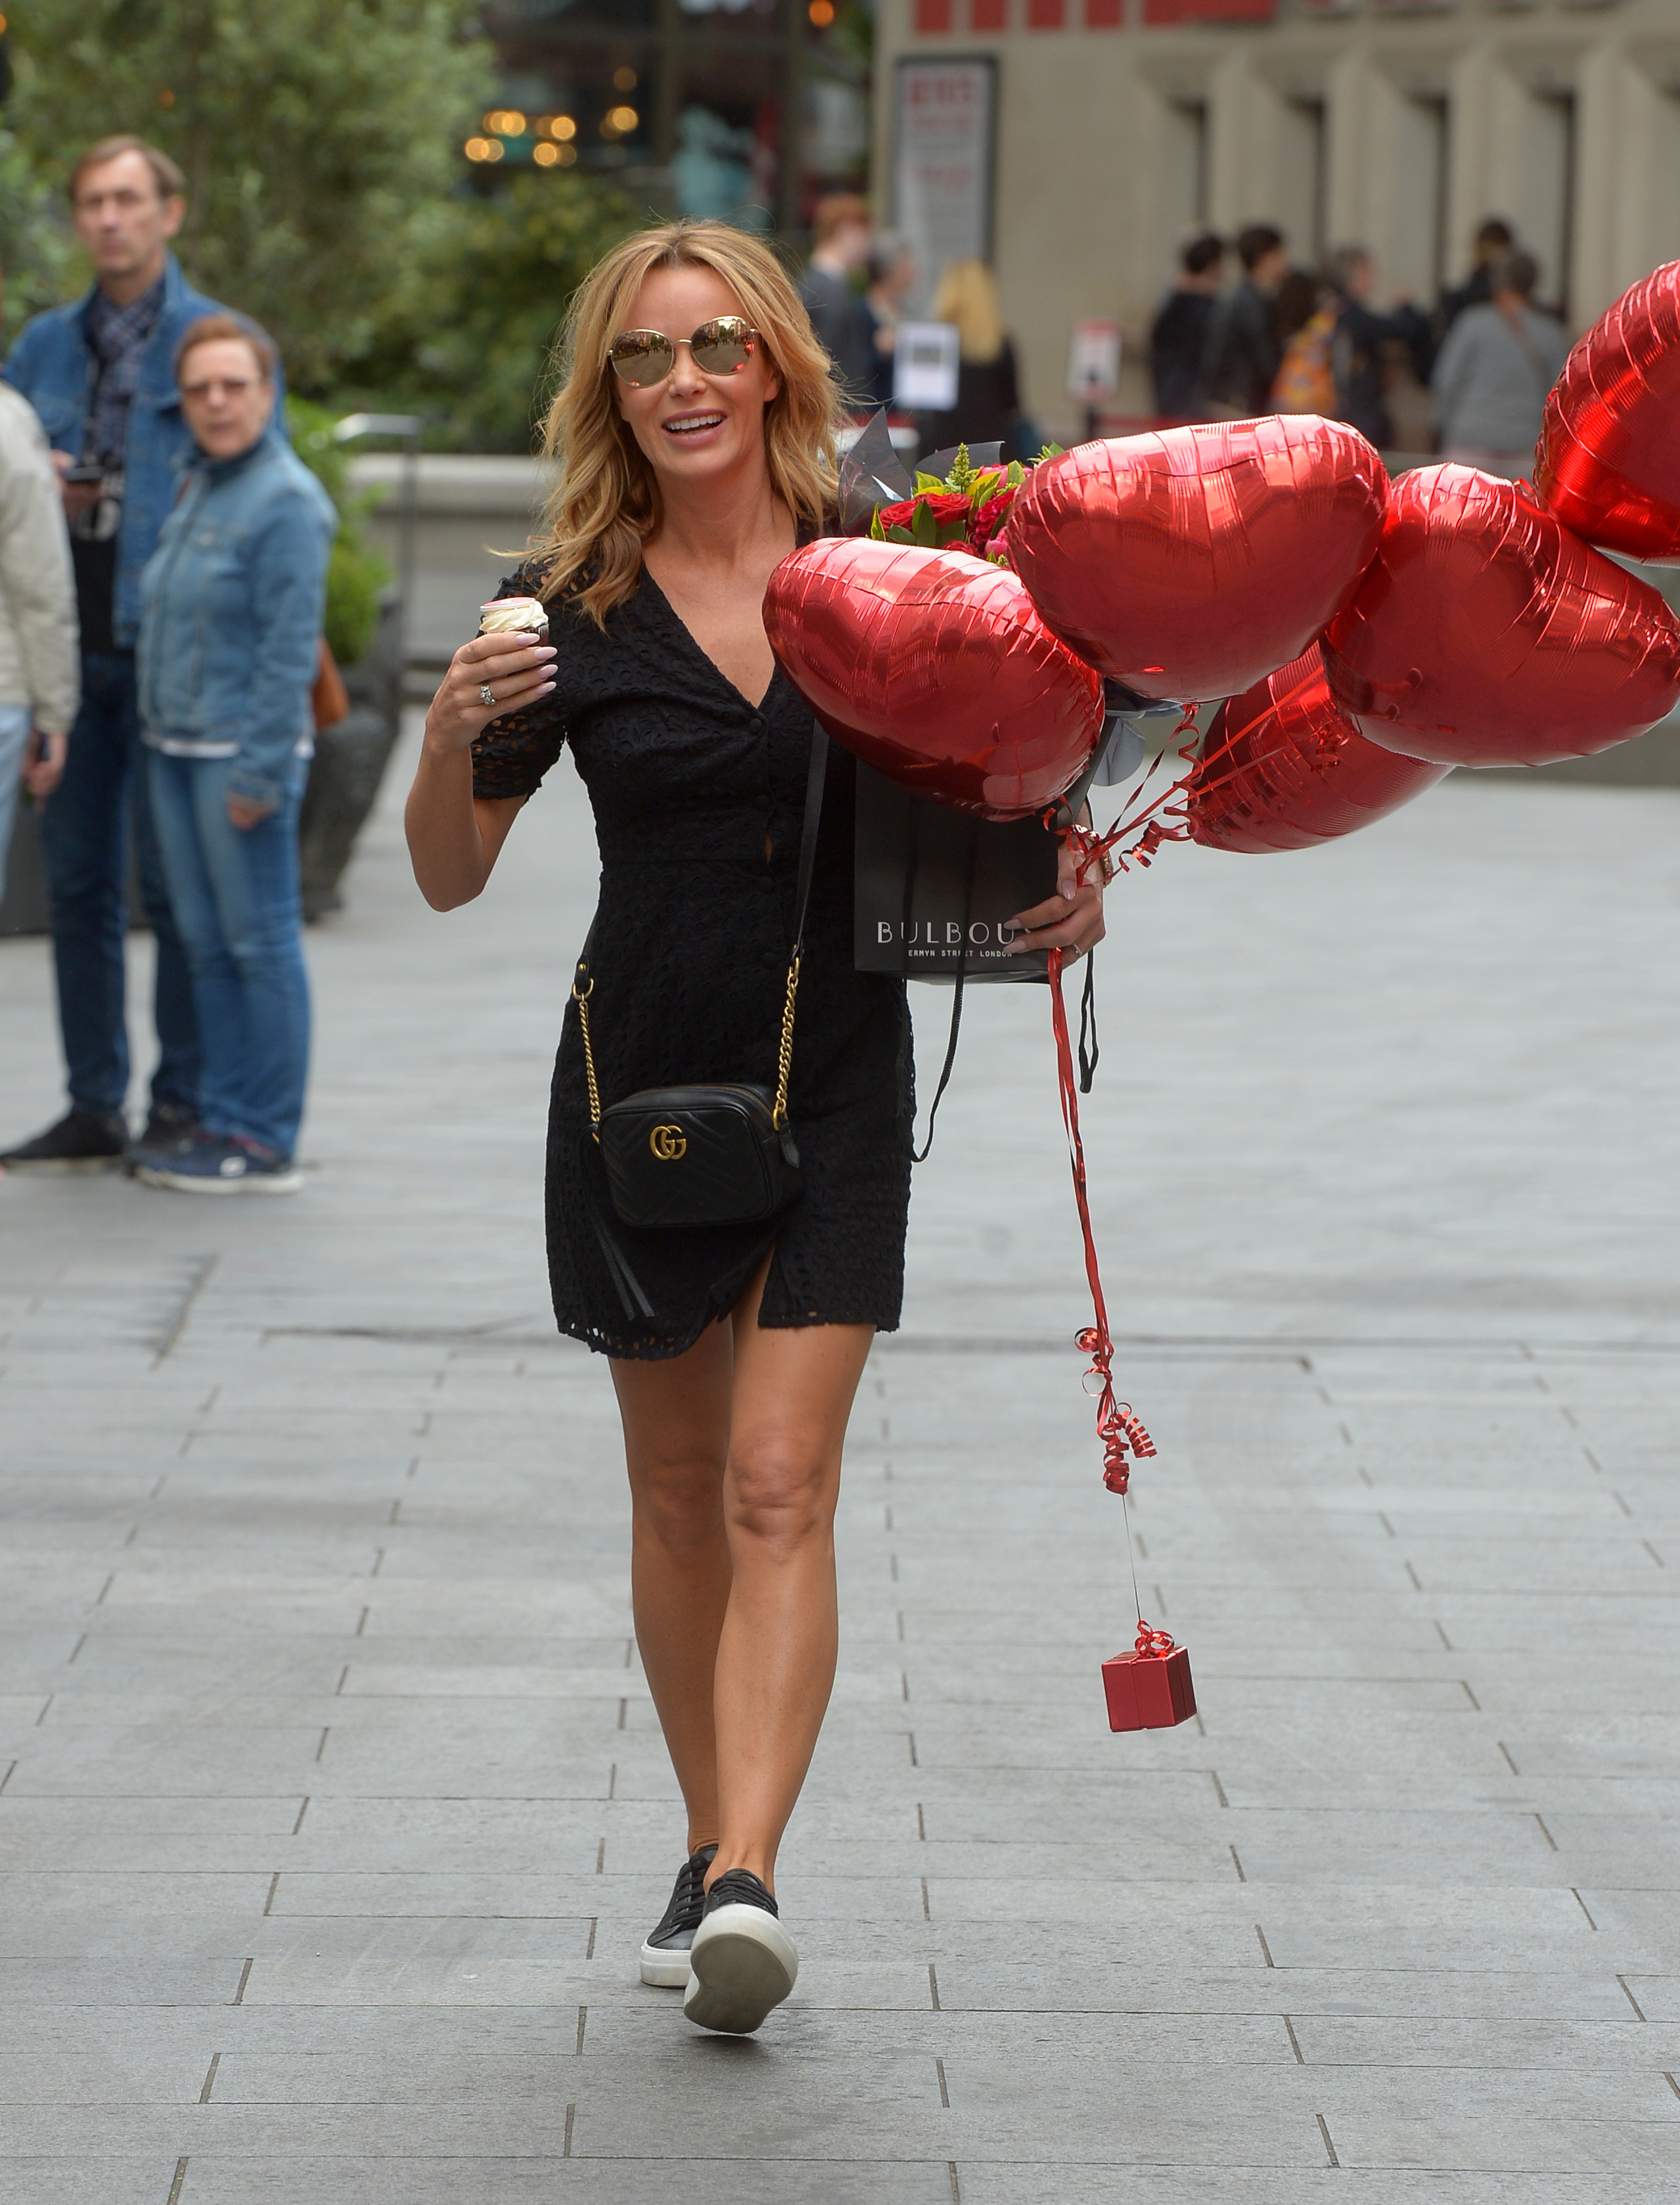 Amanda Holden wouldn't want to find spiders, flies or